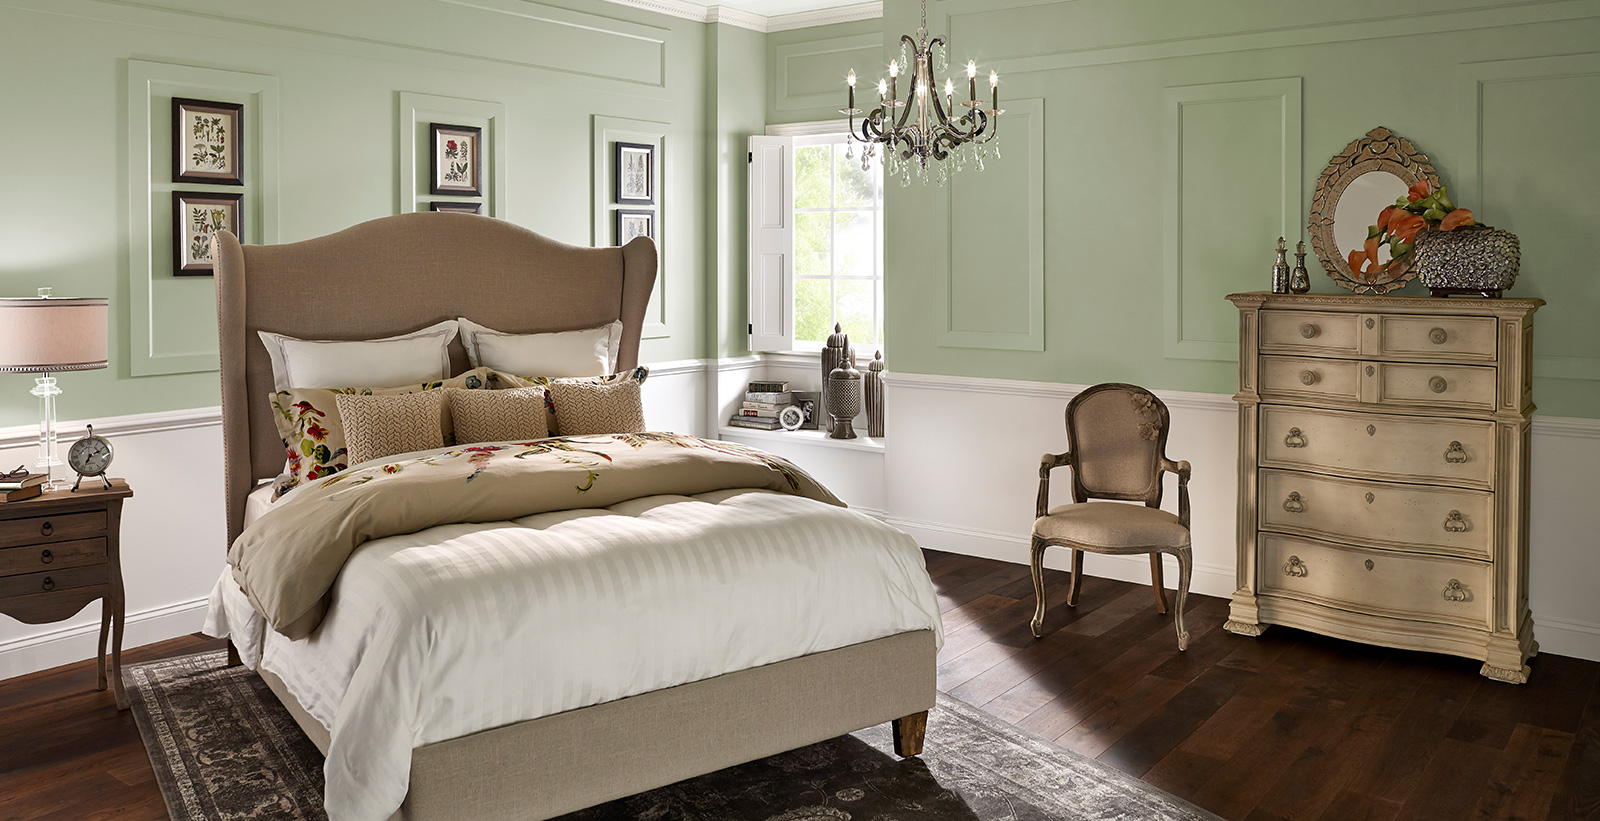 Traditional styled bedroom with pale green on top half of walls, white on bottom half, and tan upholstered bed frame and headboard